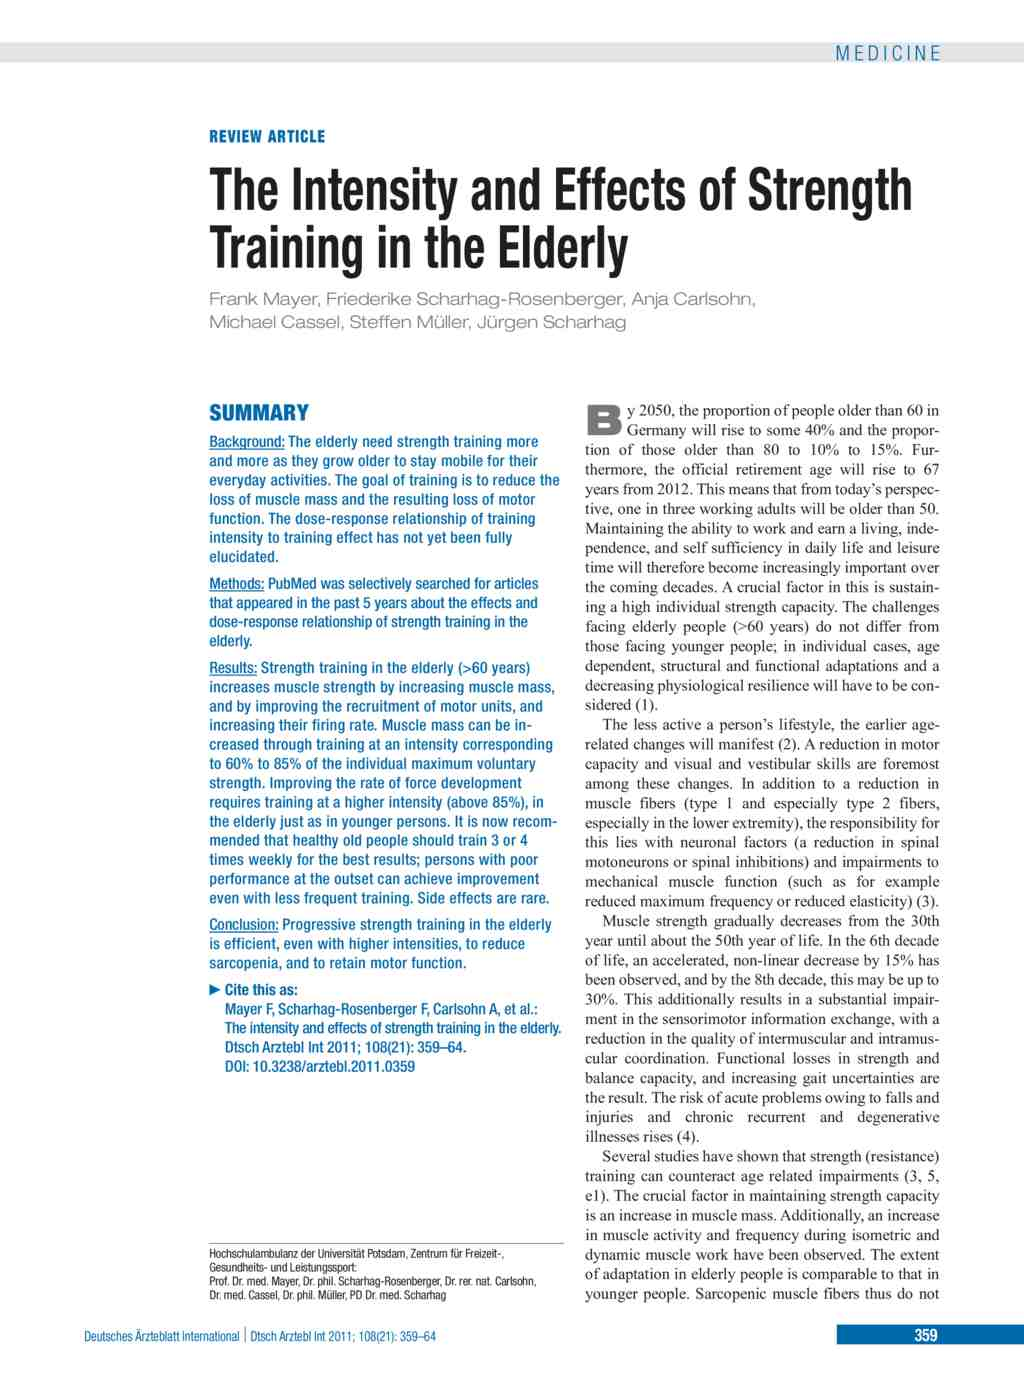 effects of ageism on the elderly pdf